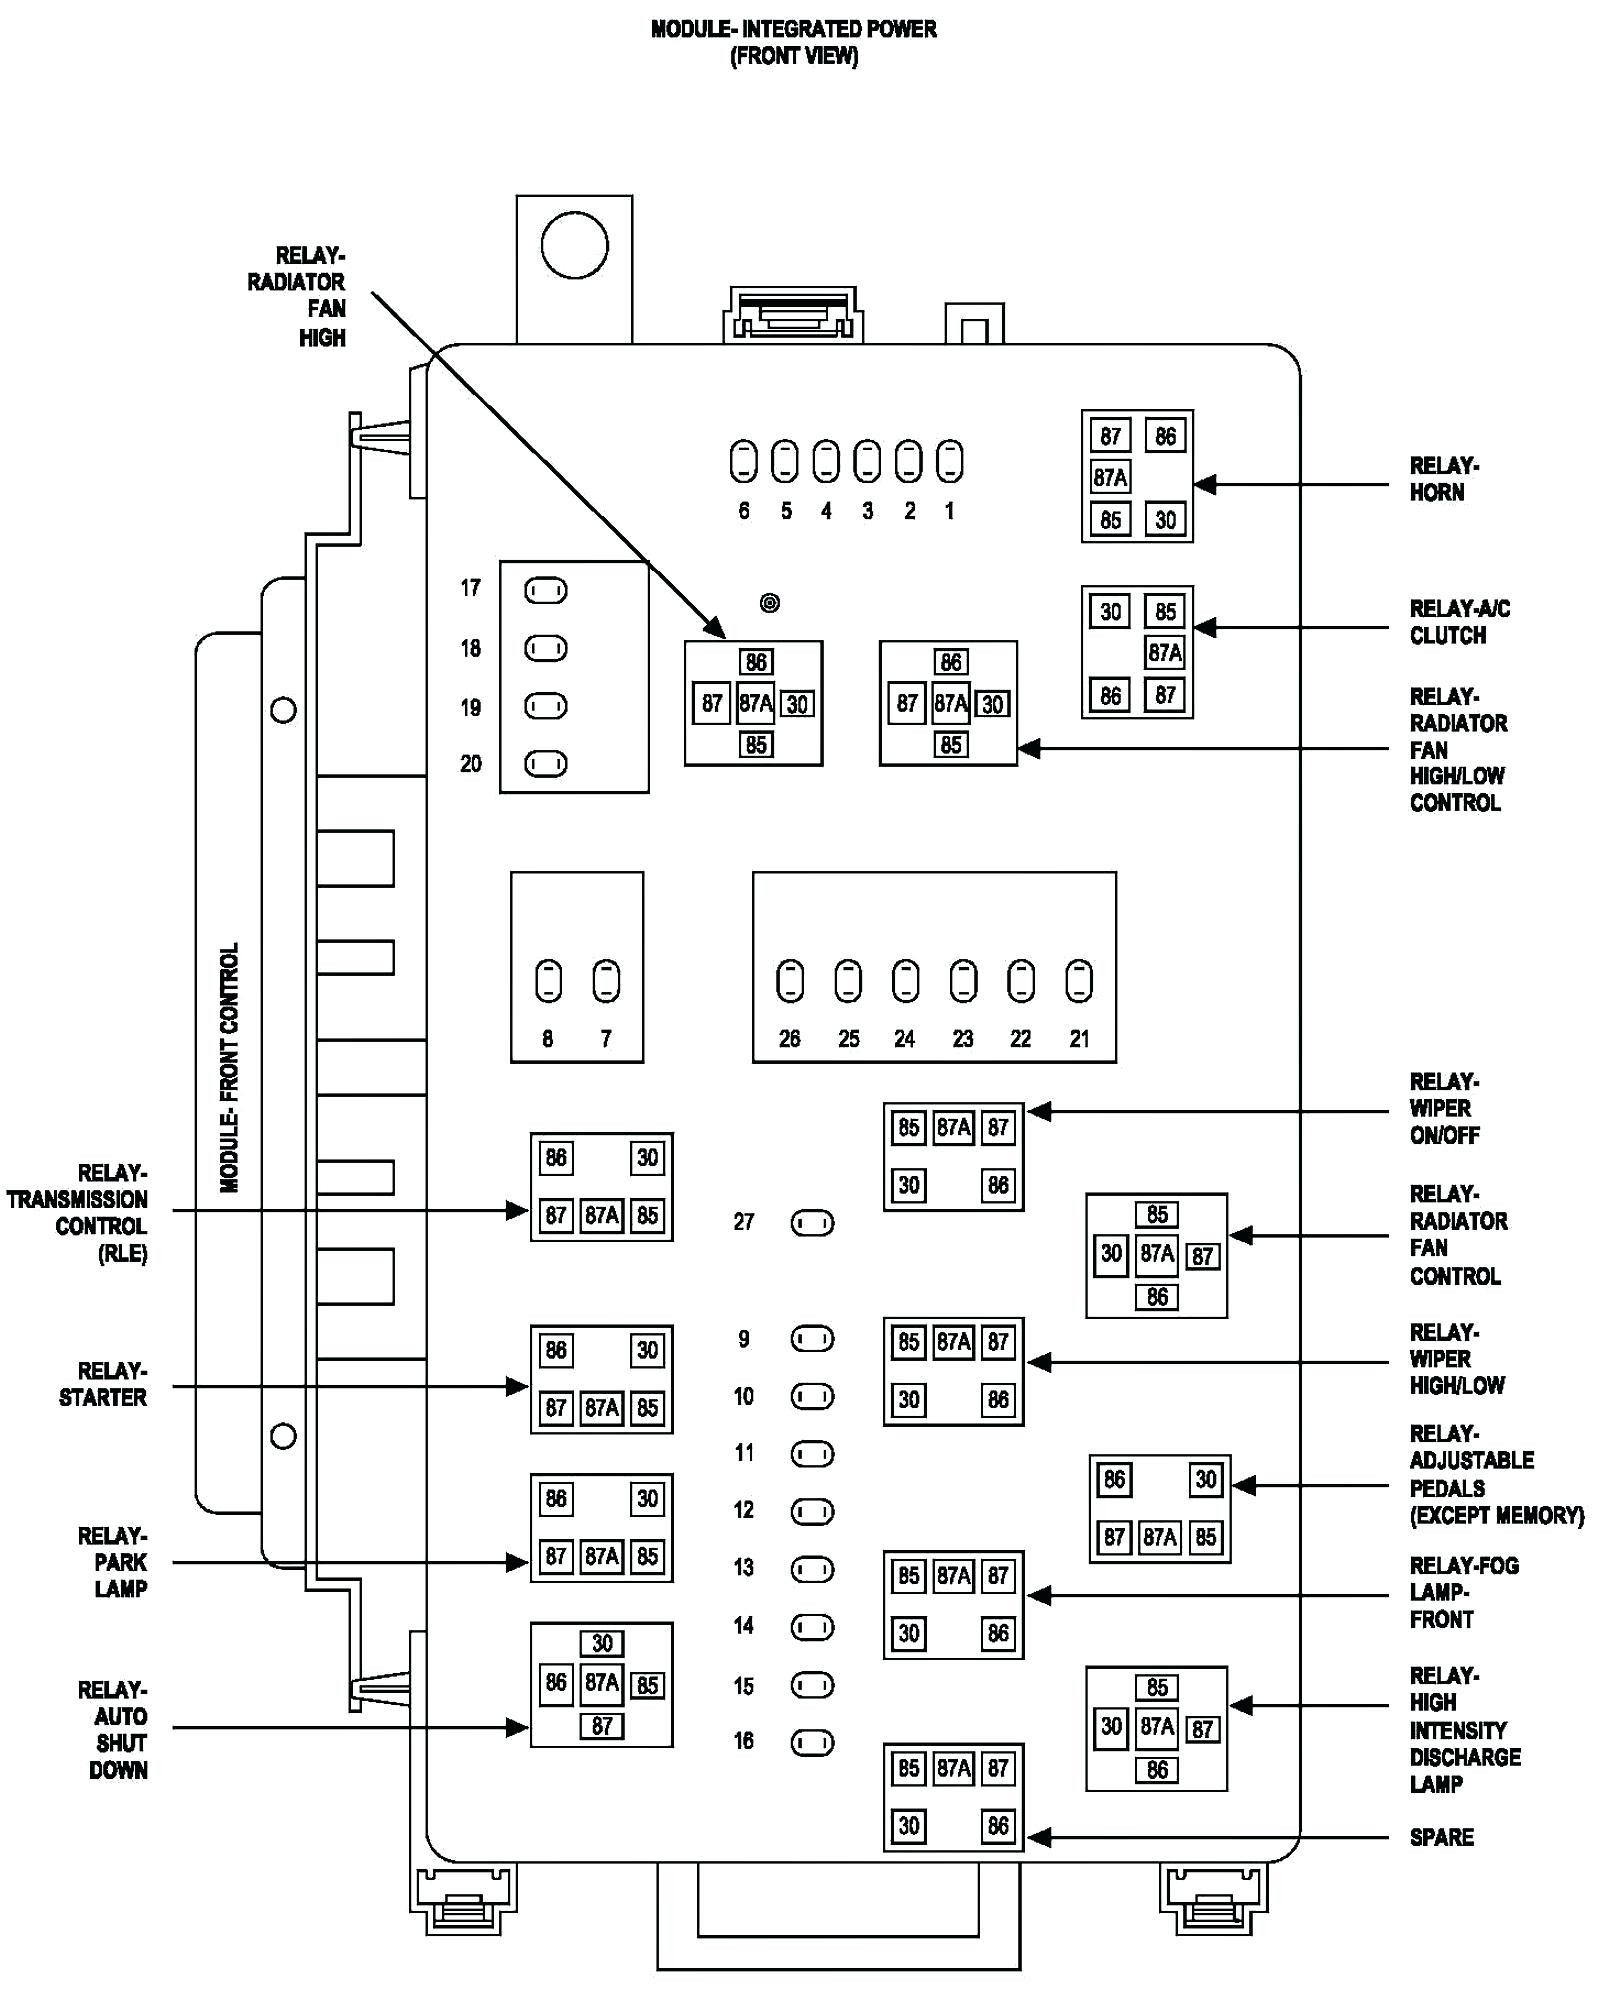 fuse box 1989 suzuki swift wiring diagram. Black Bedroom Furniture Sets. Home Design Ideas